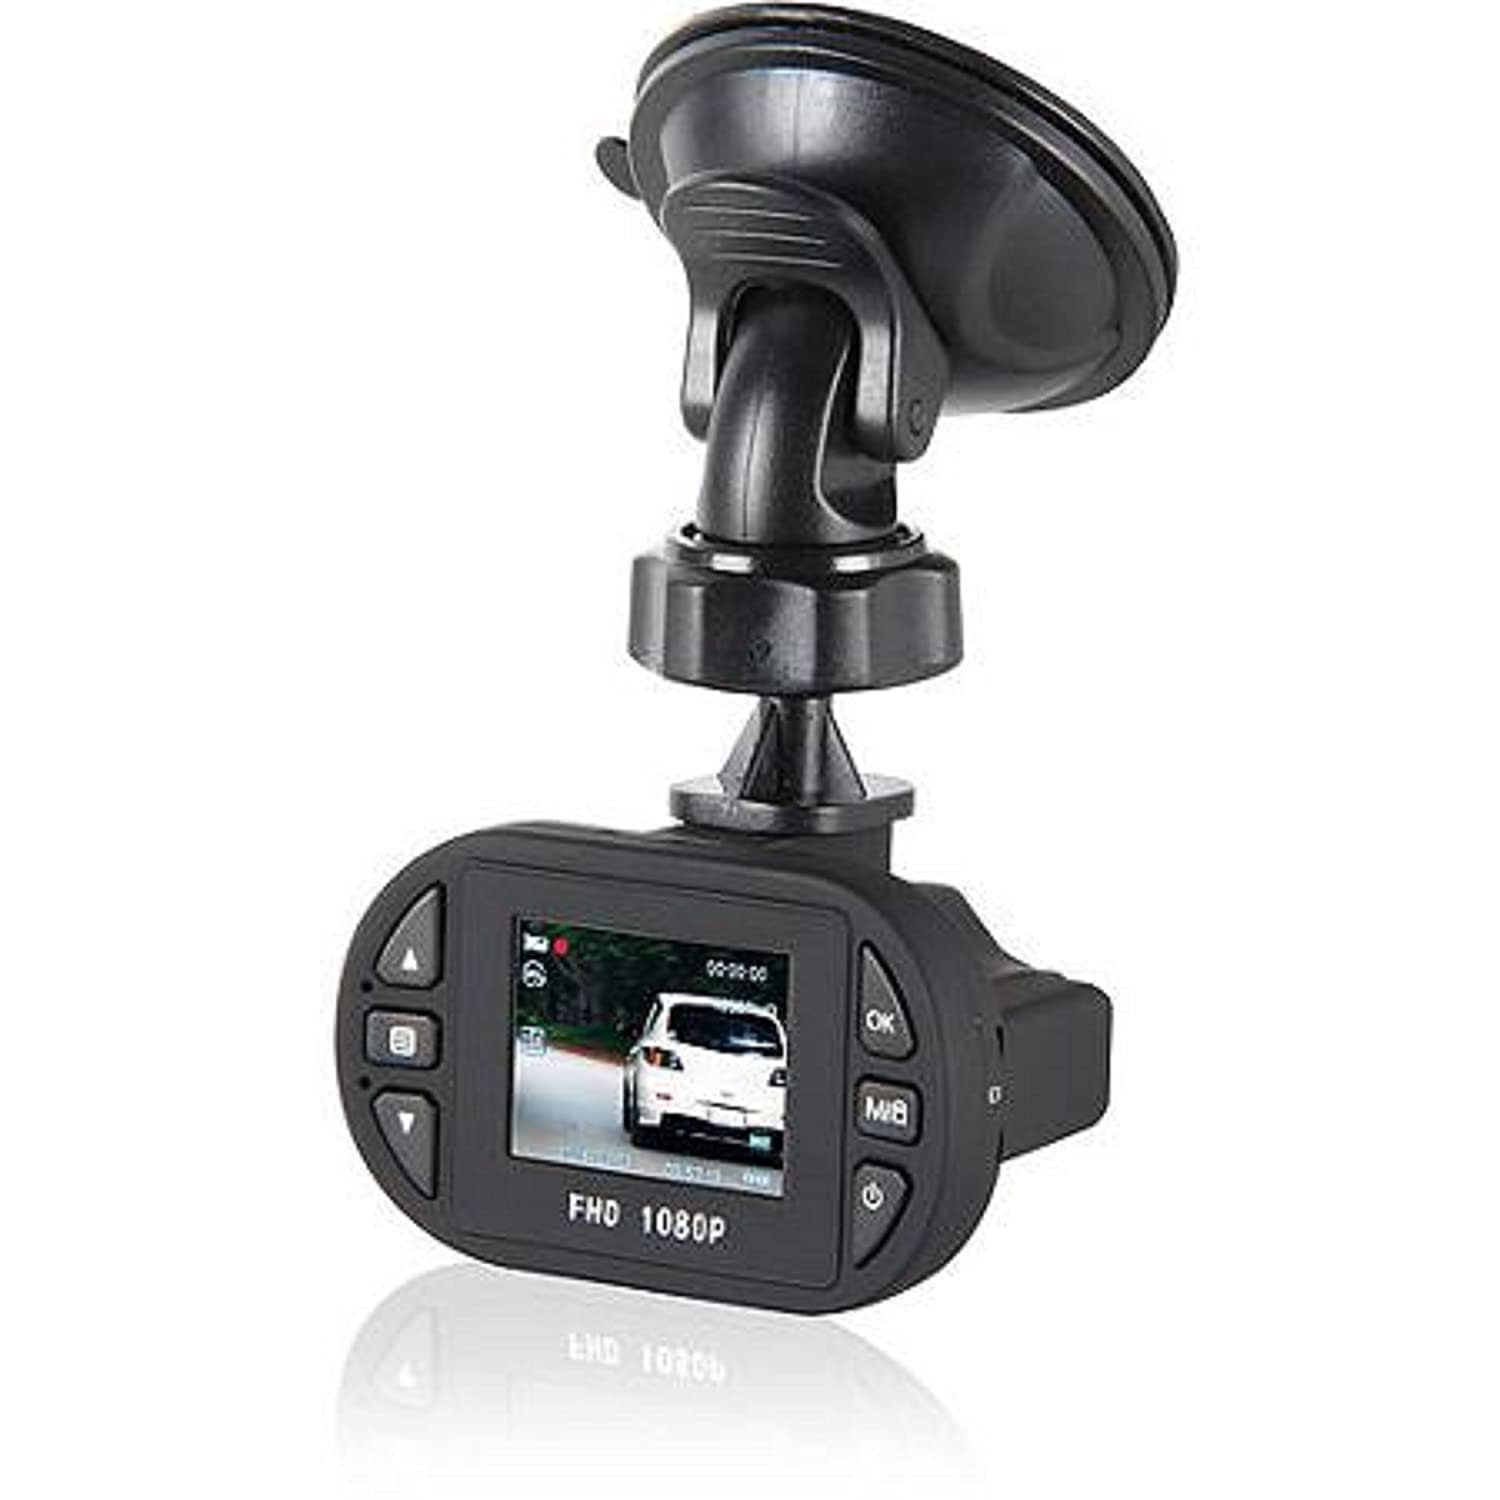 The Dual Function (Photo/Video) Smart Gear 1080p Dash Cam Recorder with Accessories